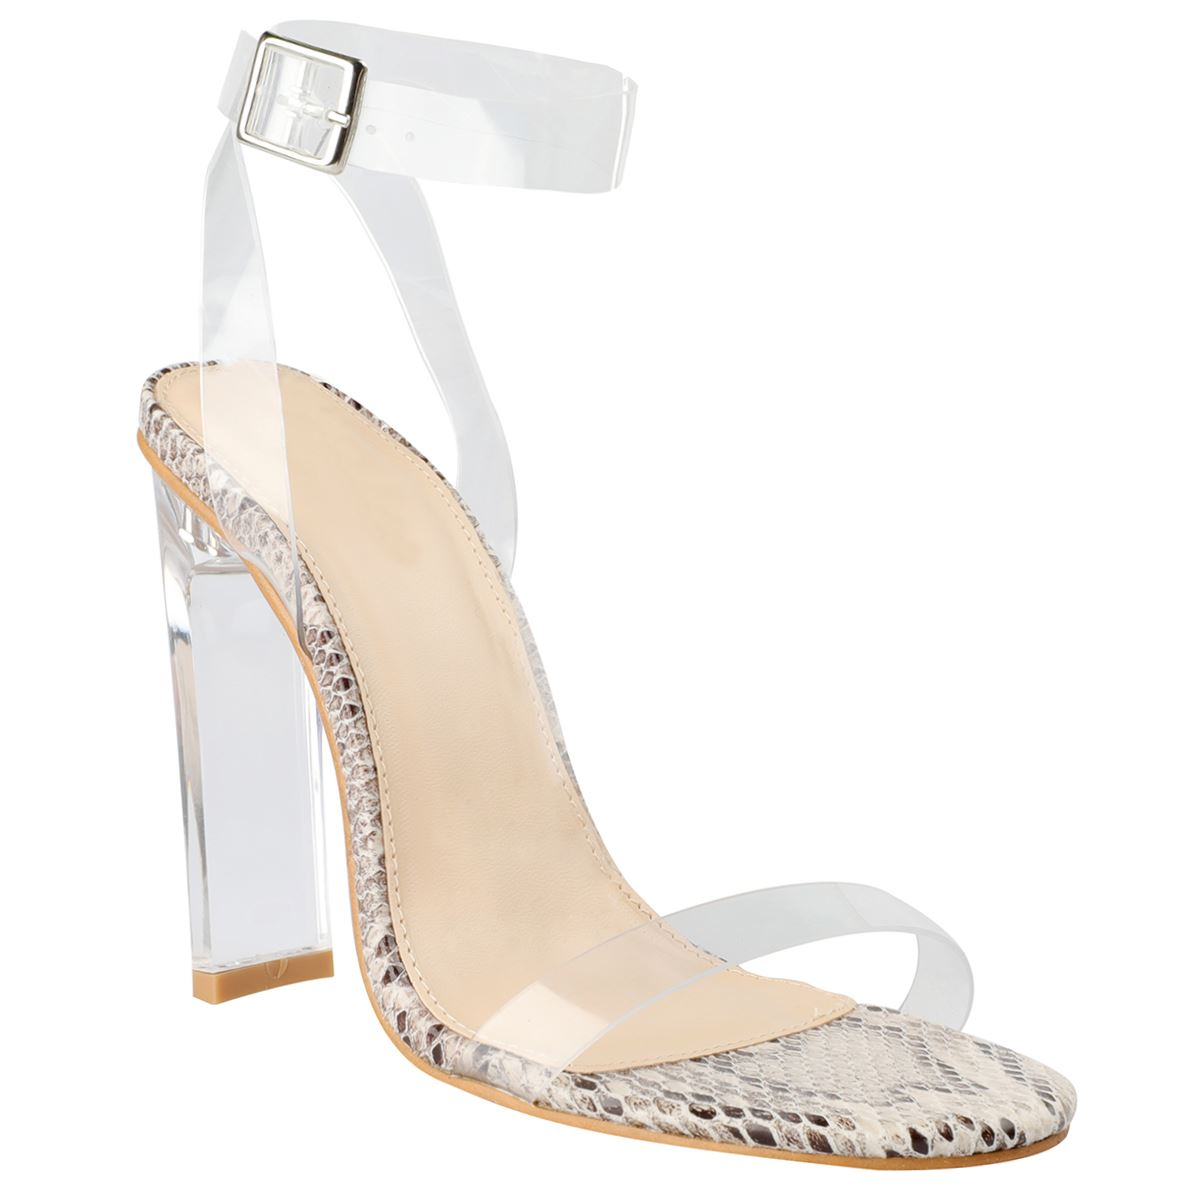 New Womens High Heel Nude Black Perspex Clear Strappy Party Sandals Barely There